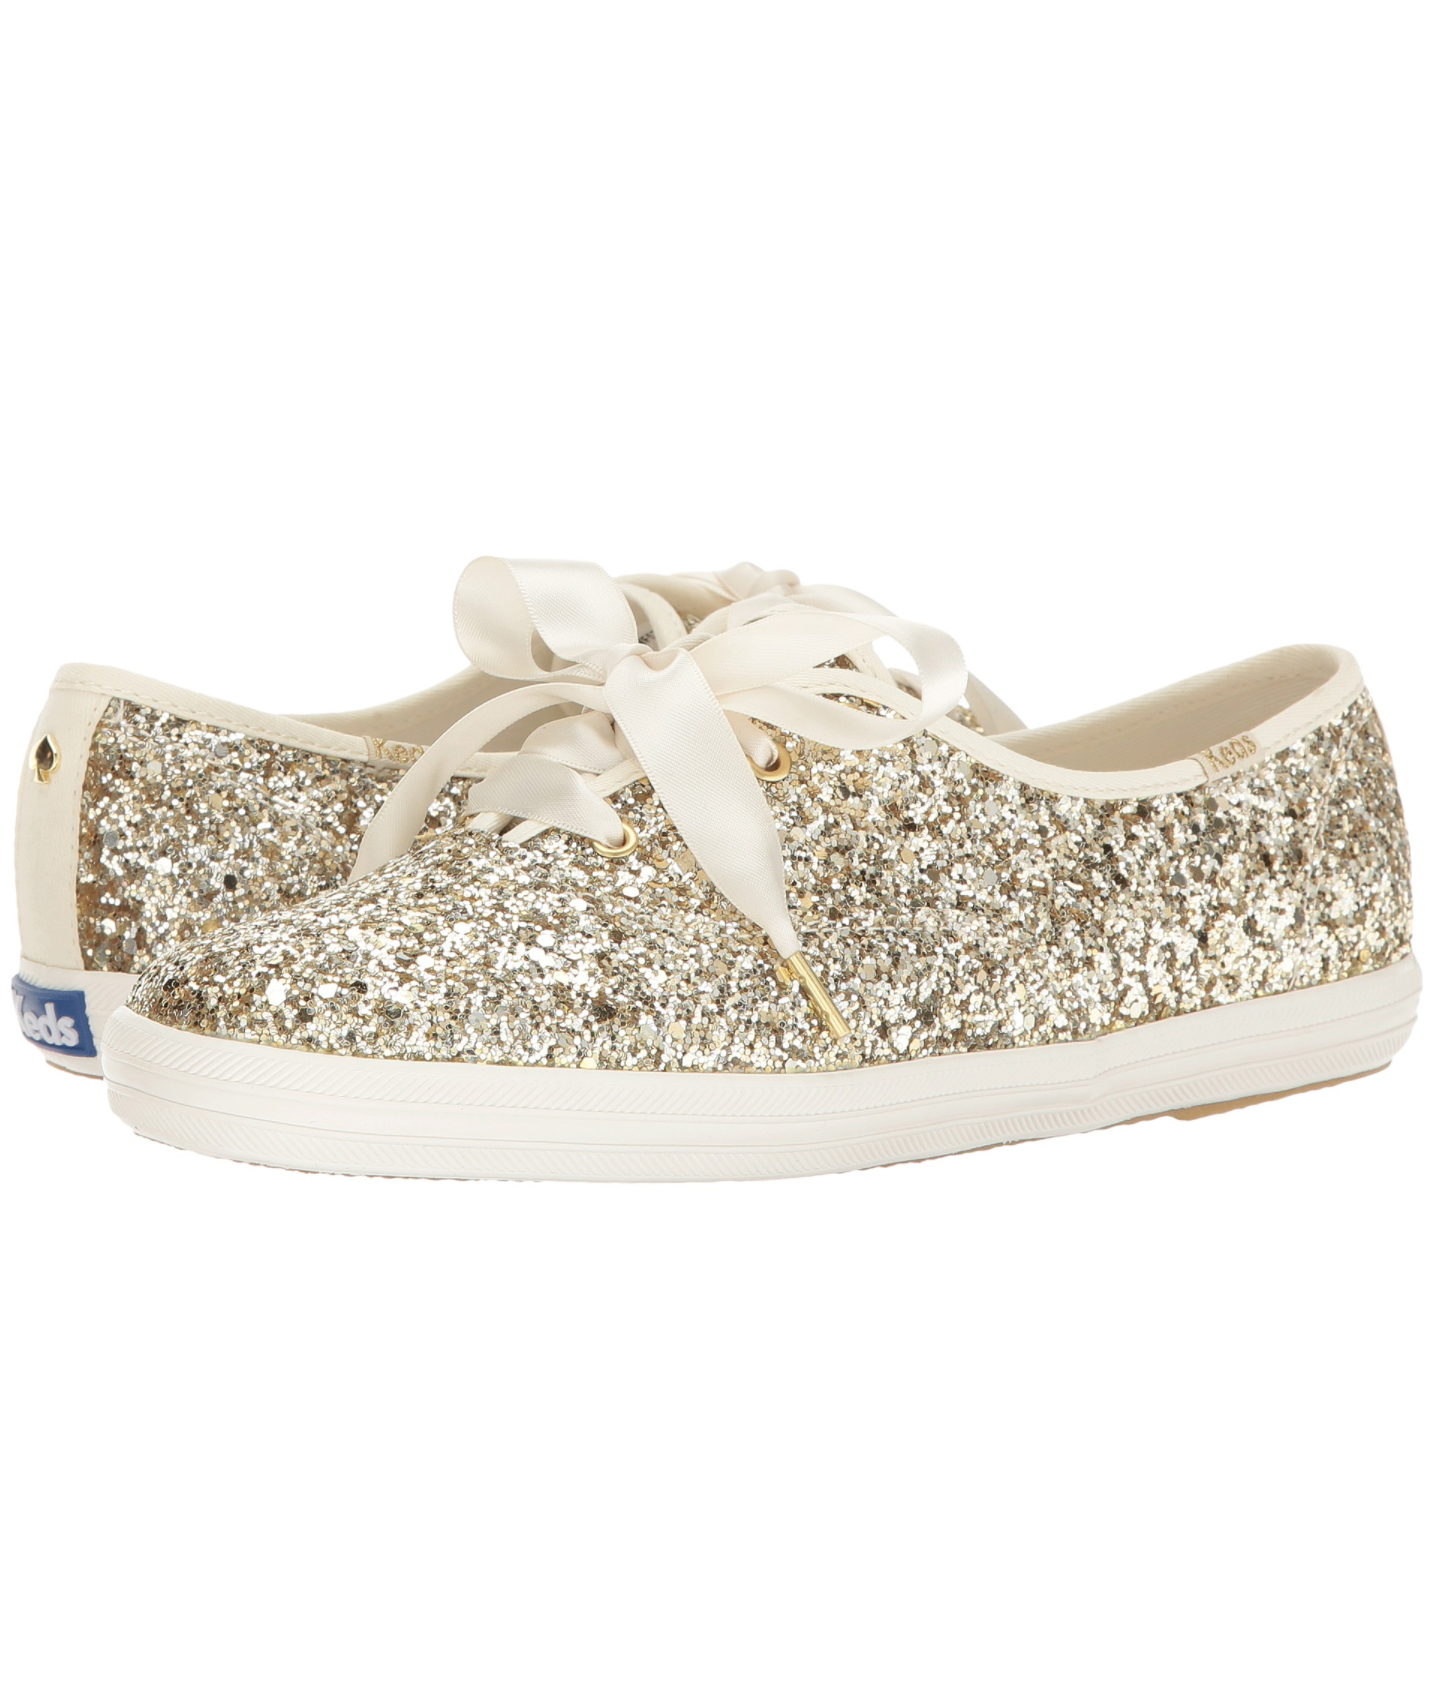 Kate Spade New York Glittery Sneakers